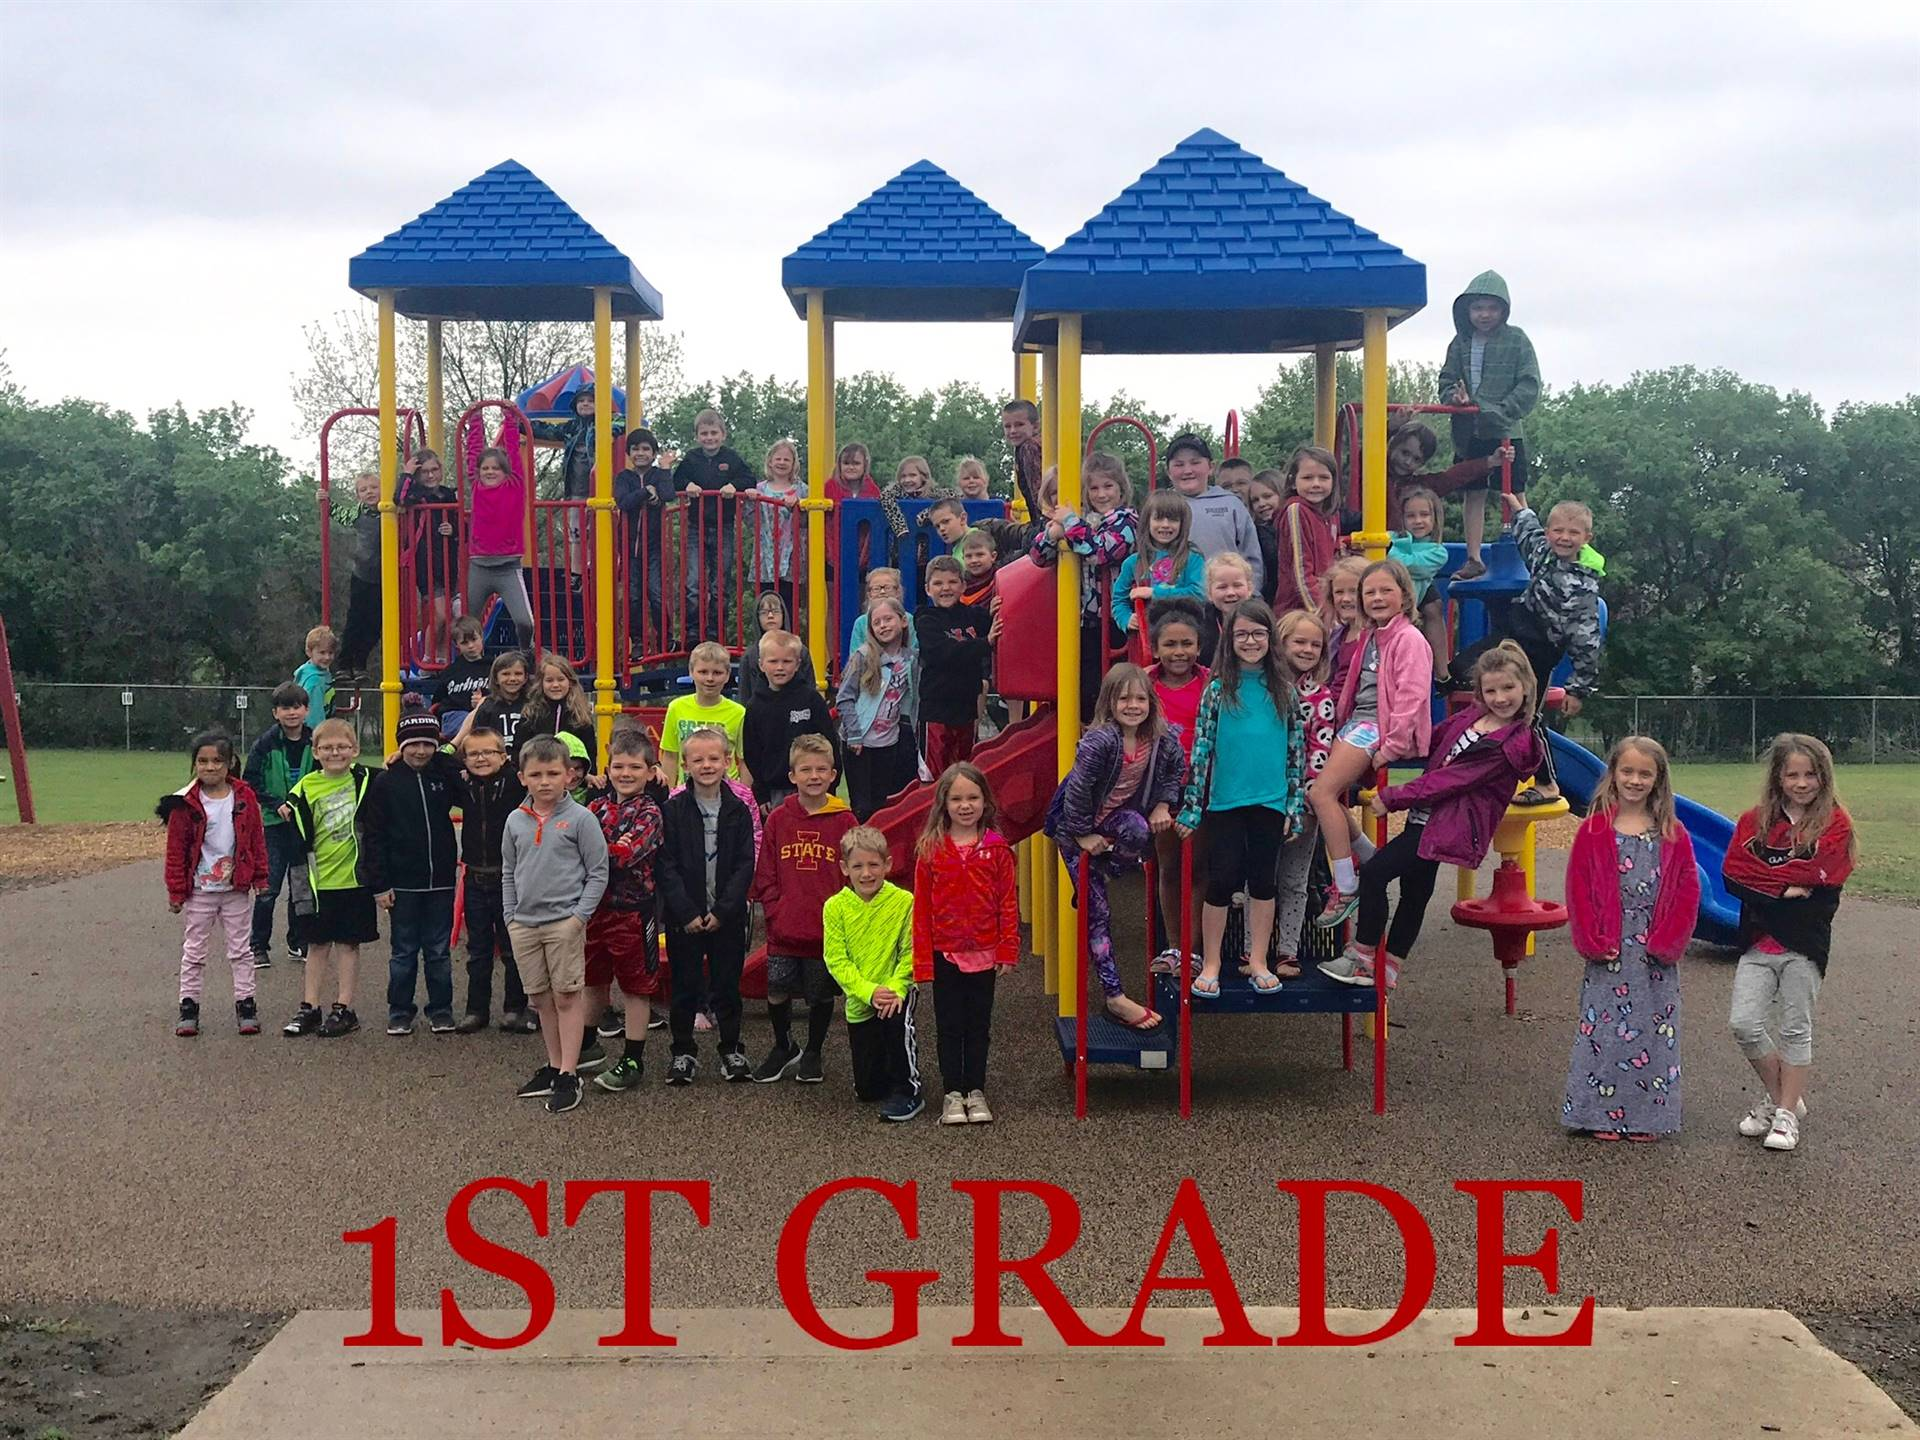 1st Grade children lined up on playground outside for class picture